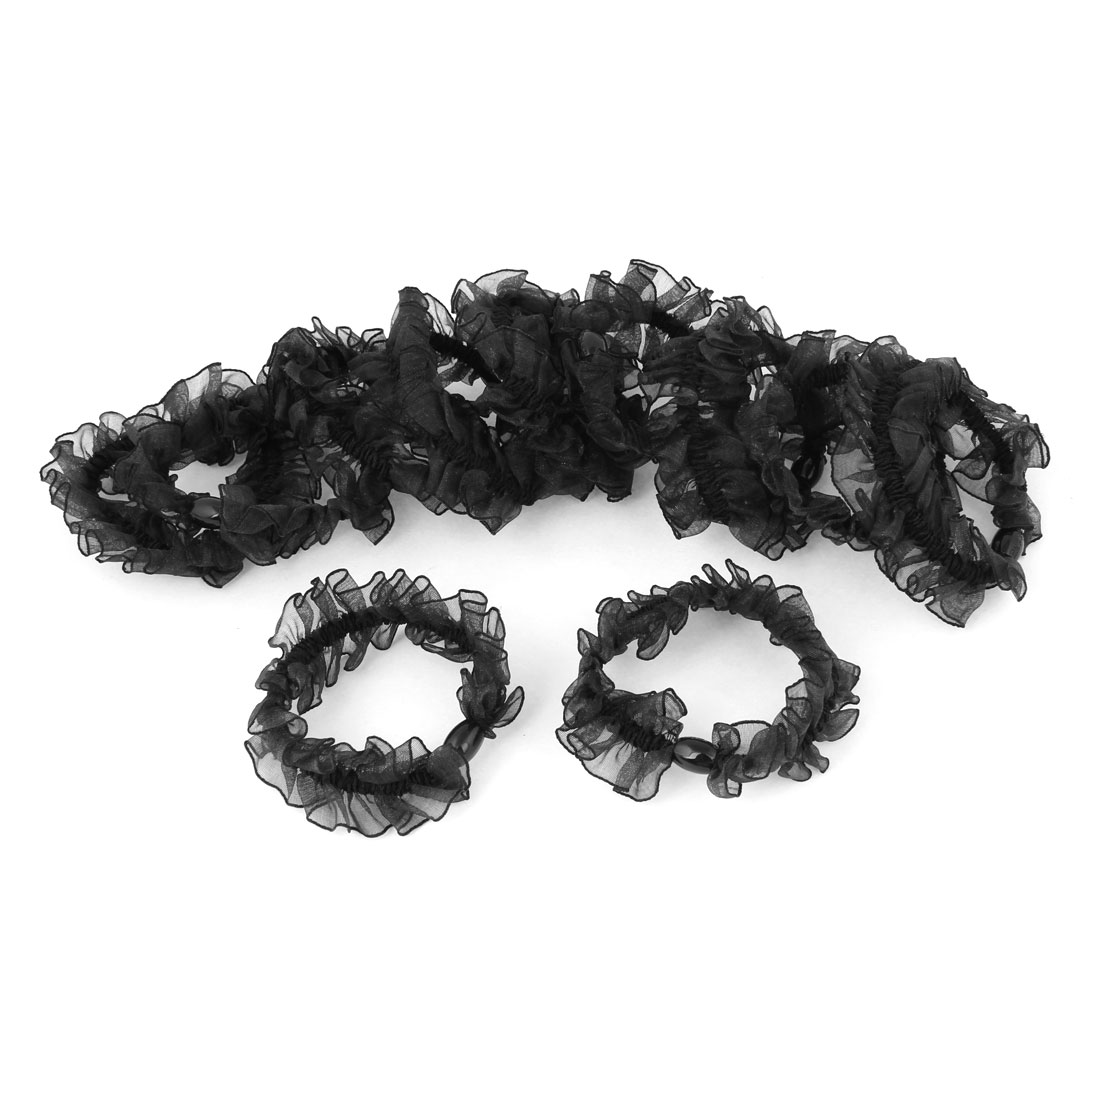 10 Pcs Black Edge Nylon Stretchy Hairband Hair Tie for Woman Lady